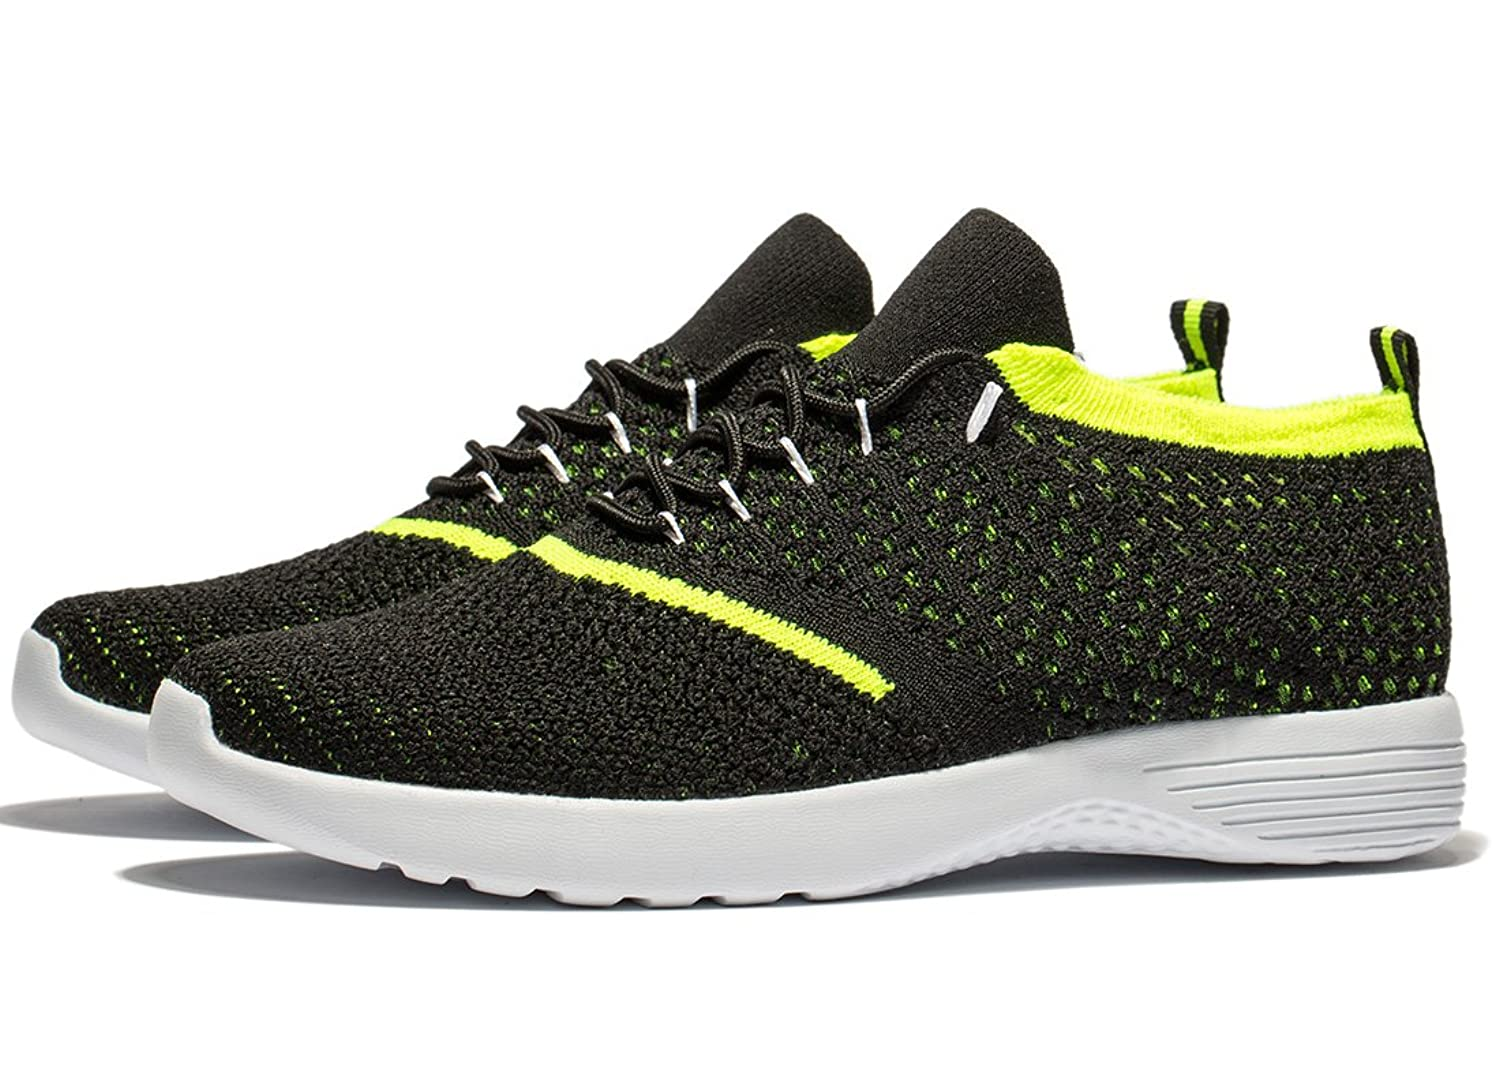 Running Shoes Dogs Friends Lightweight Breathable Sneakers Athletic Casual Walking Shoe For Men Women